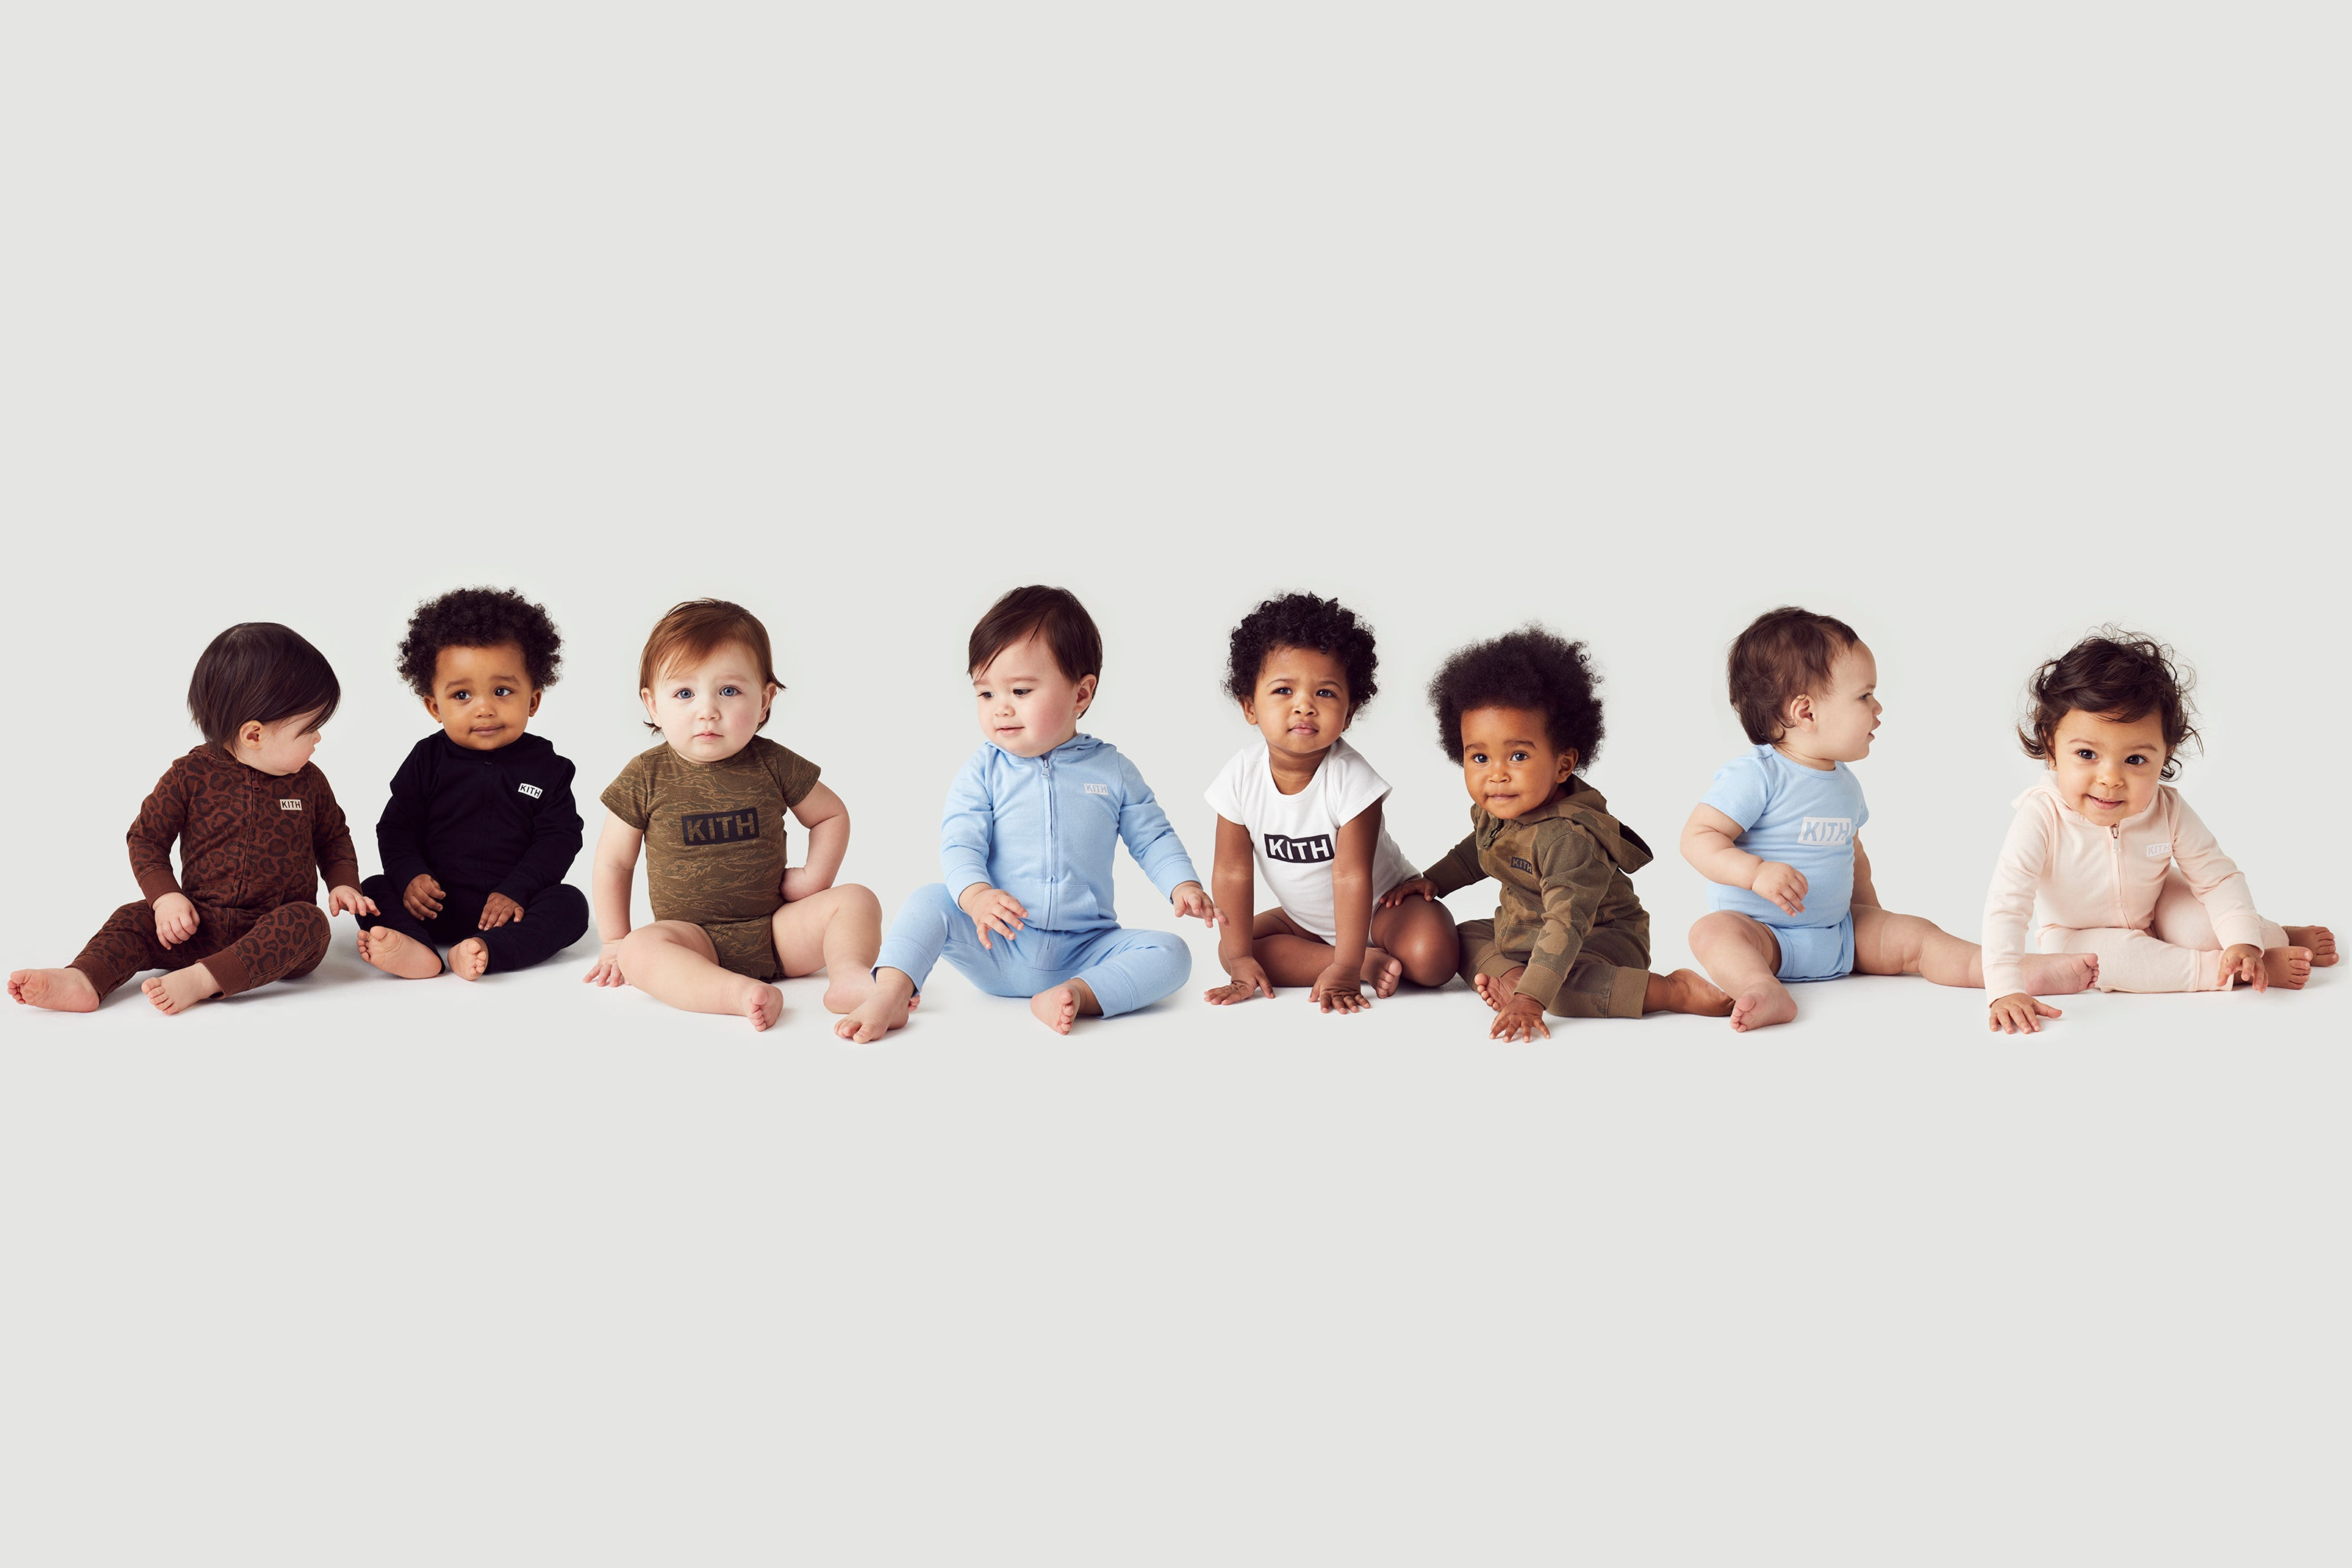 kidset toddlers collection kith